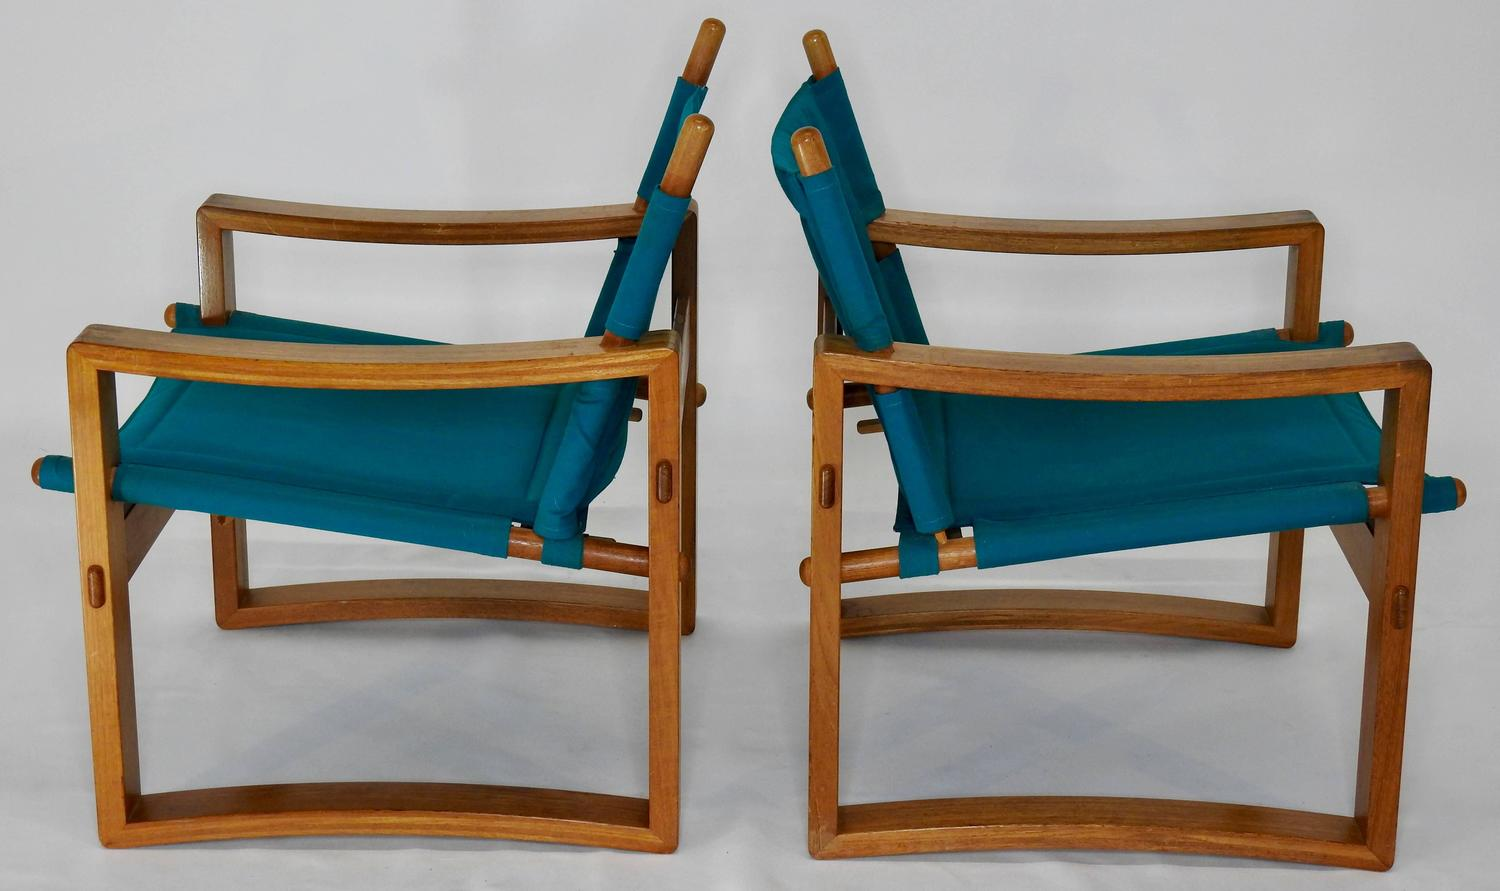 Pair of mid century teal lounge chairs with leather straps for Teal chairs for sale